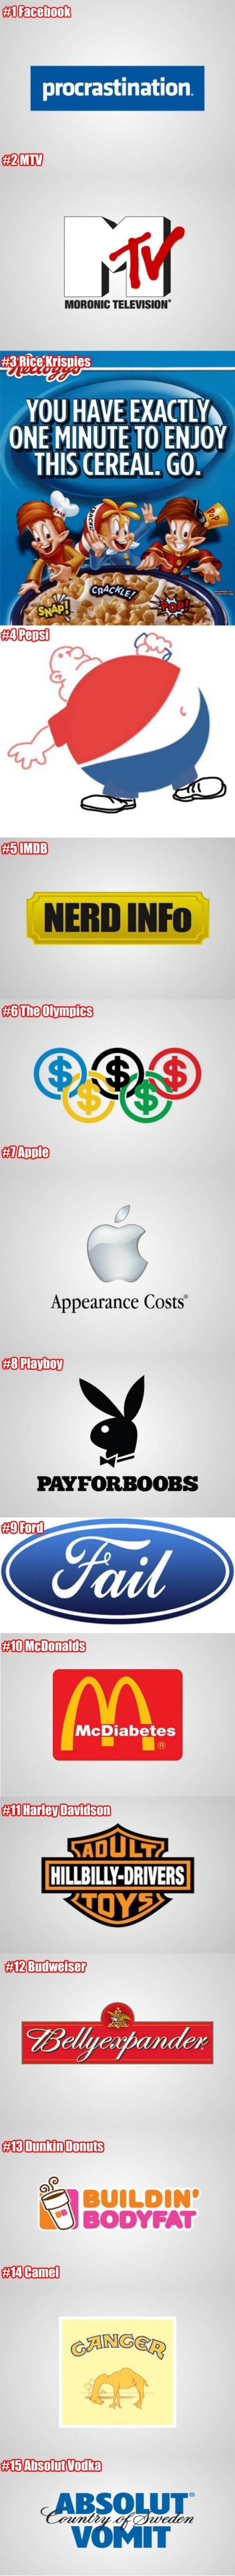 If Logos Were Honest